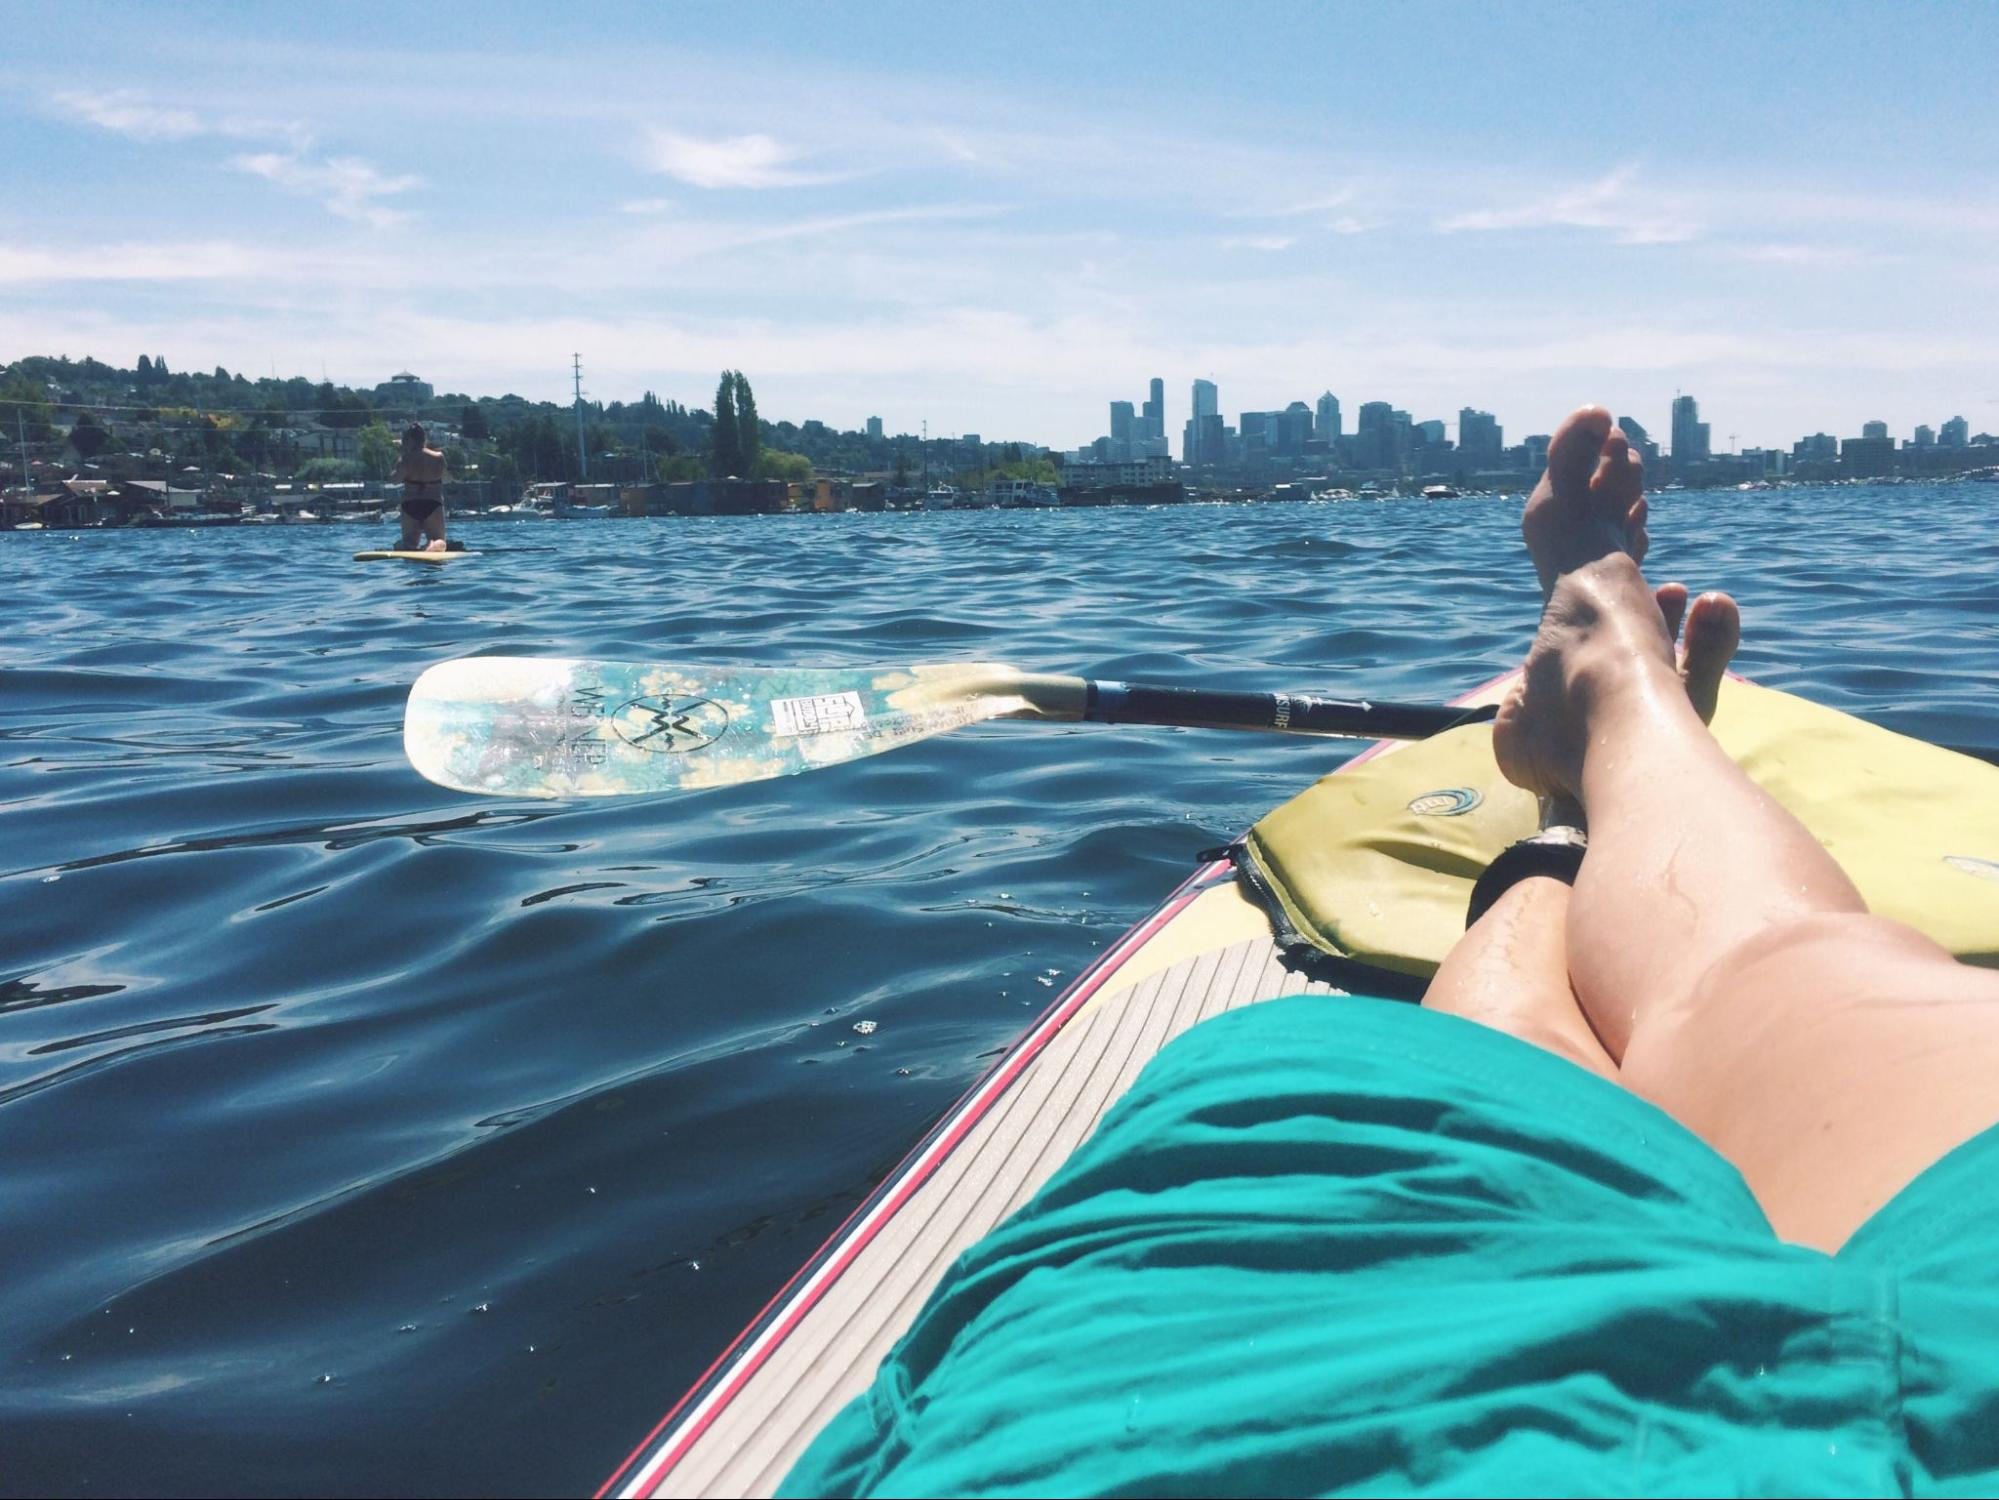 Lounging on a paddleboard during the summer in Seattle.